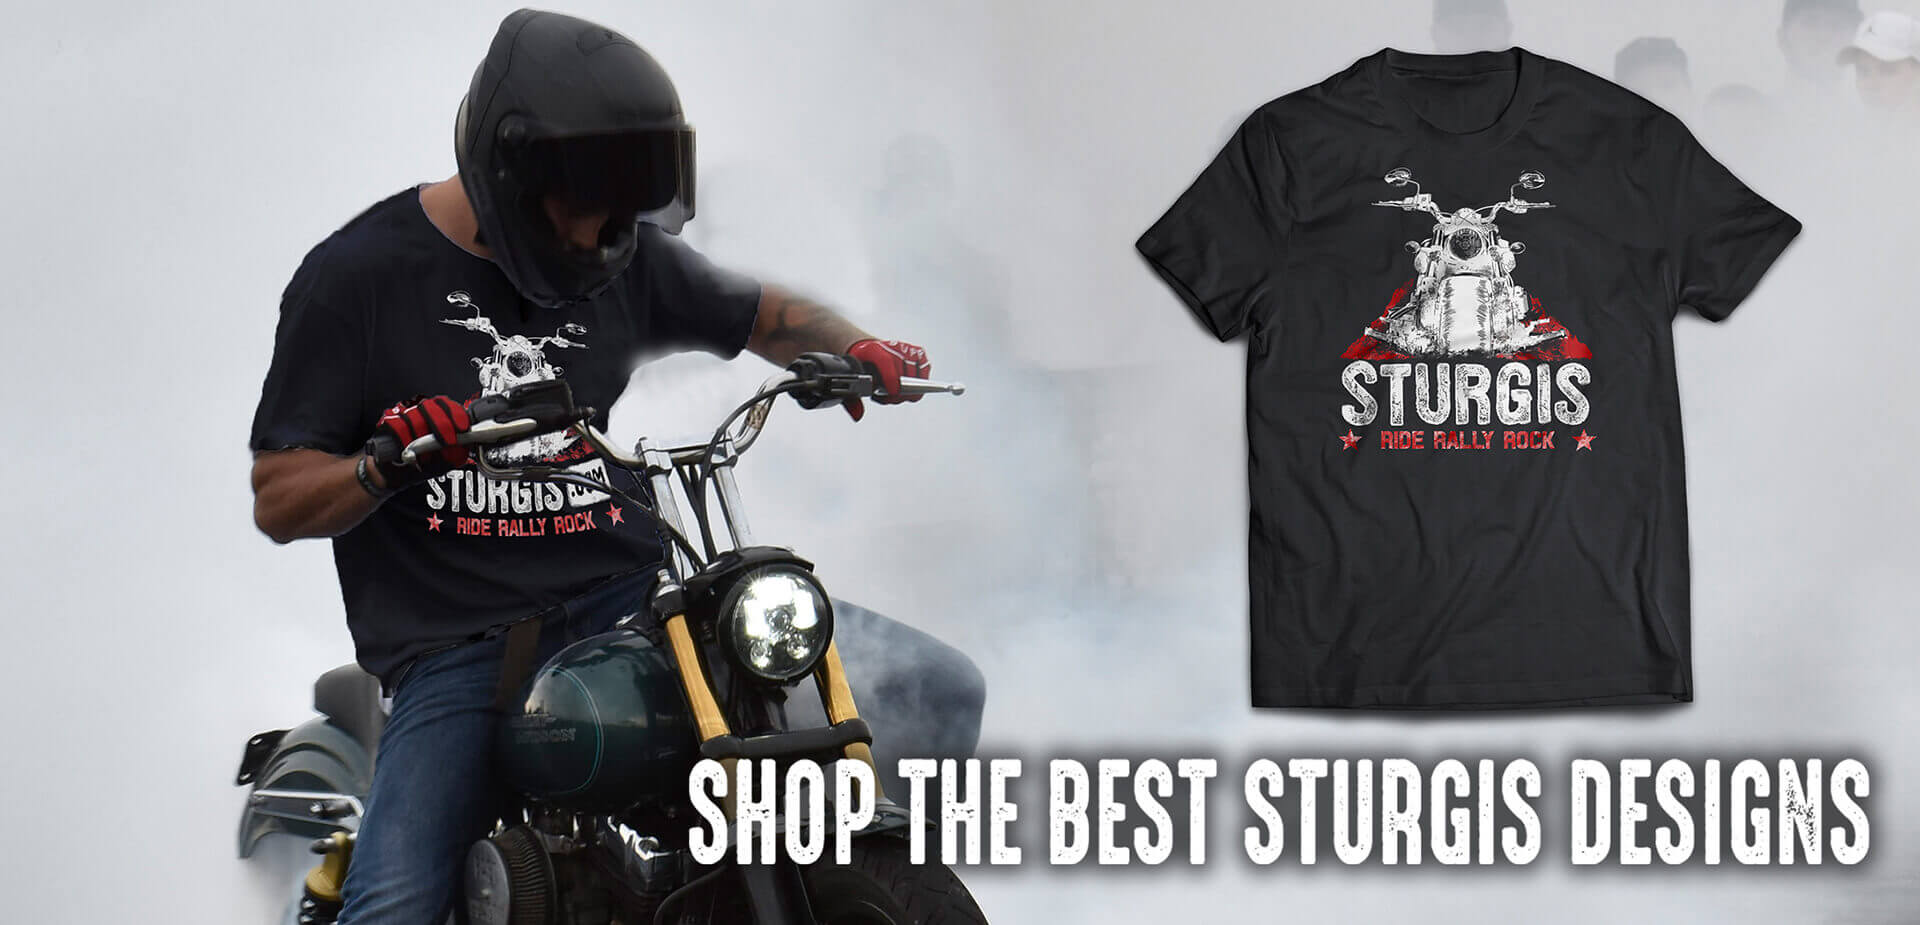 Sturgis Rally E-Commerce - Tshirts and more